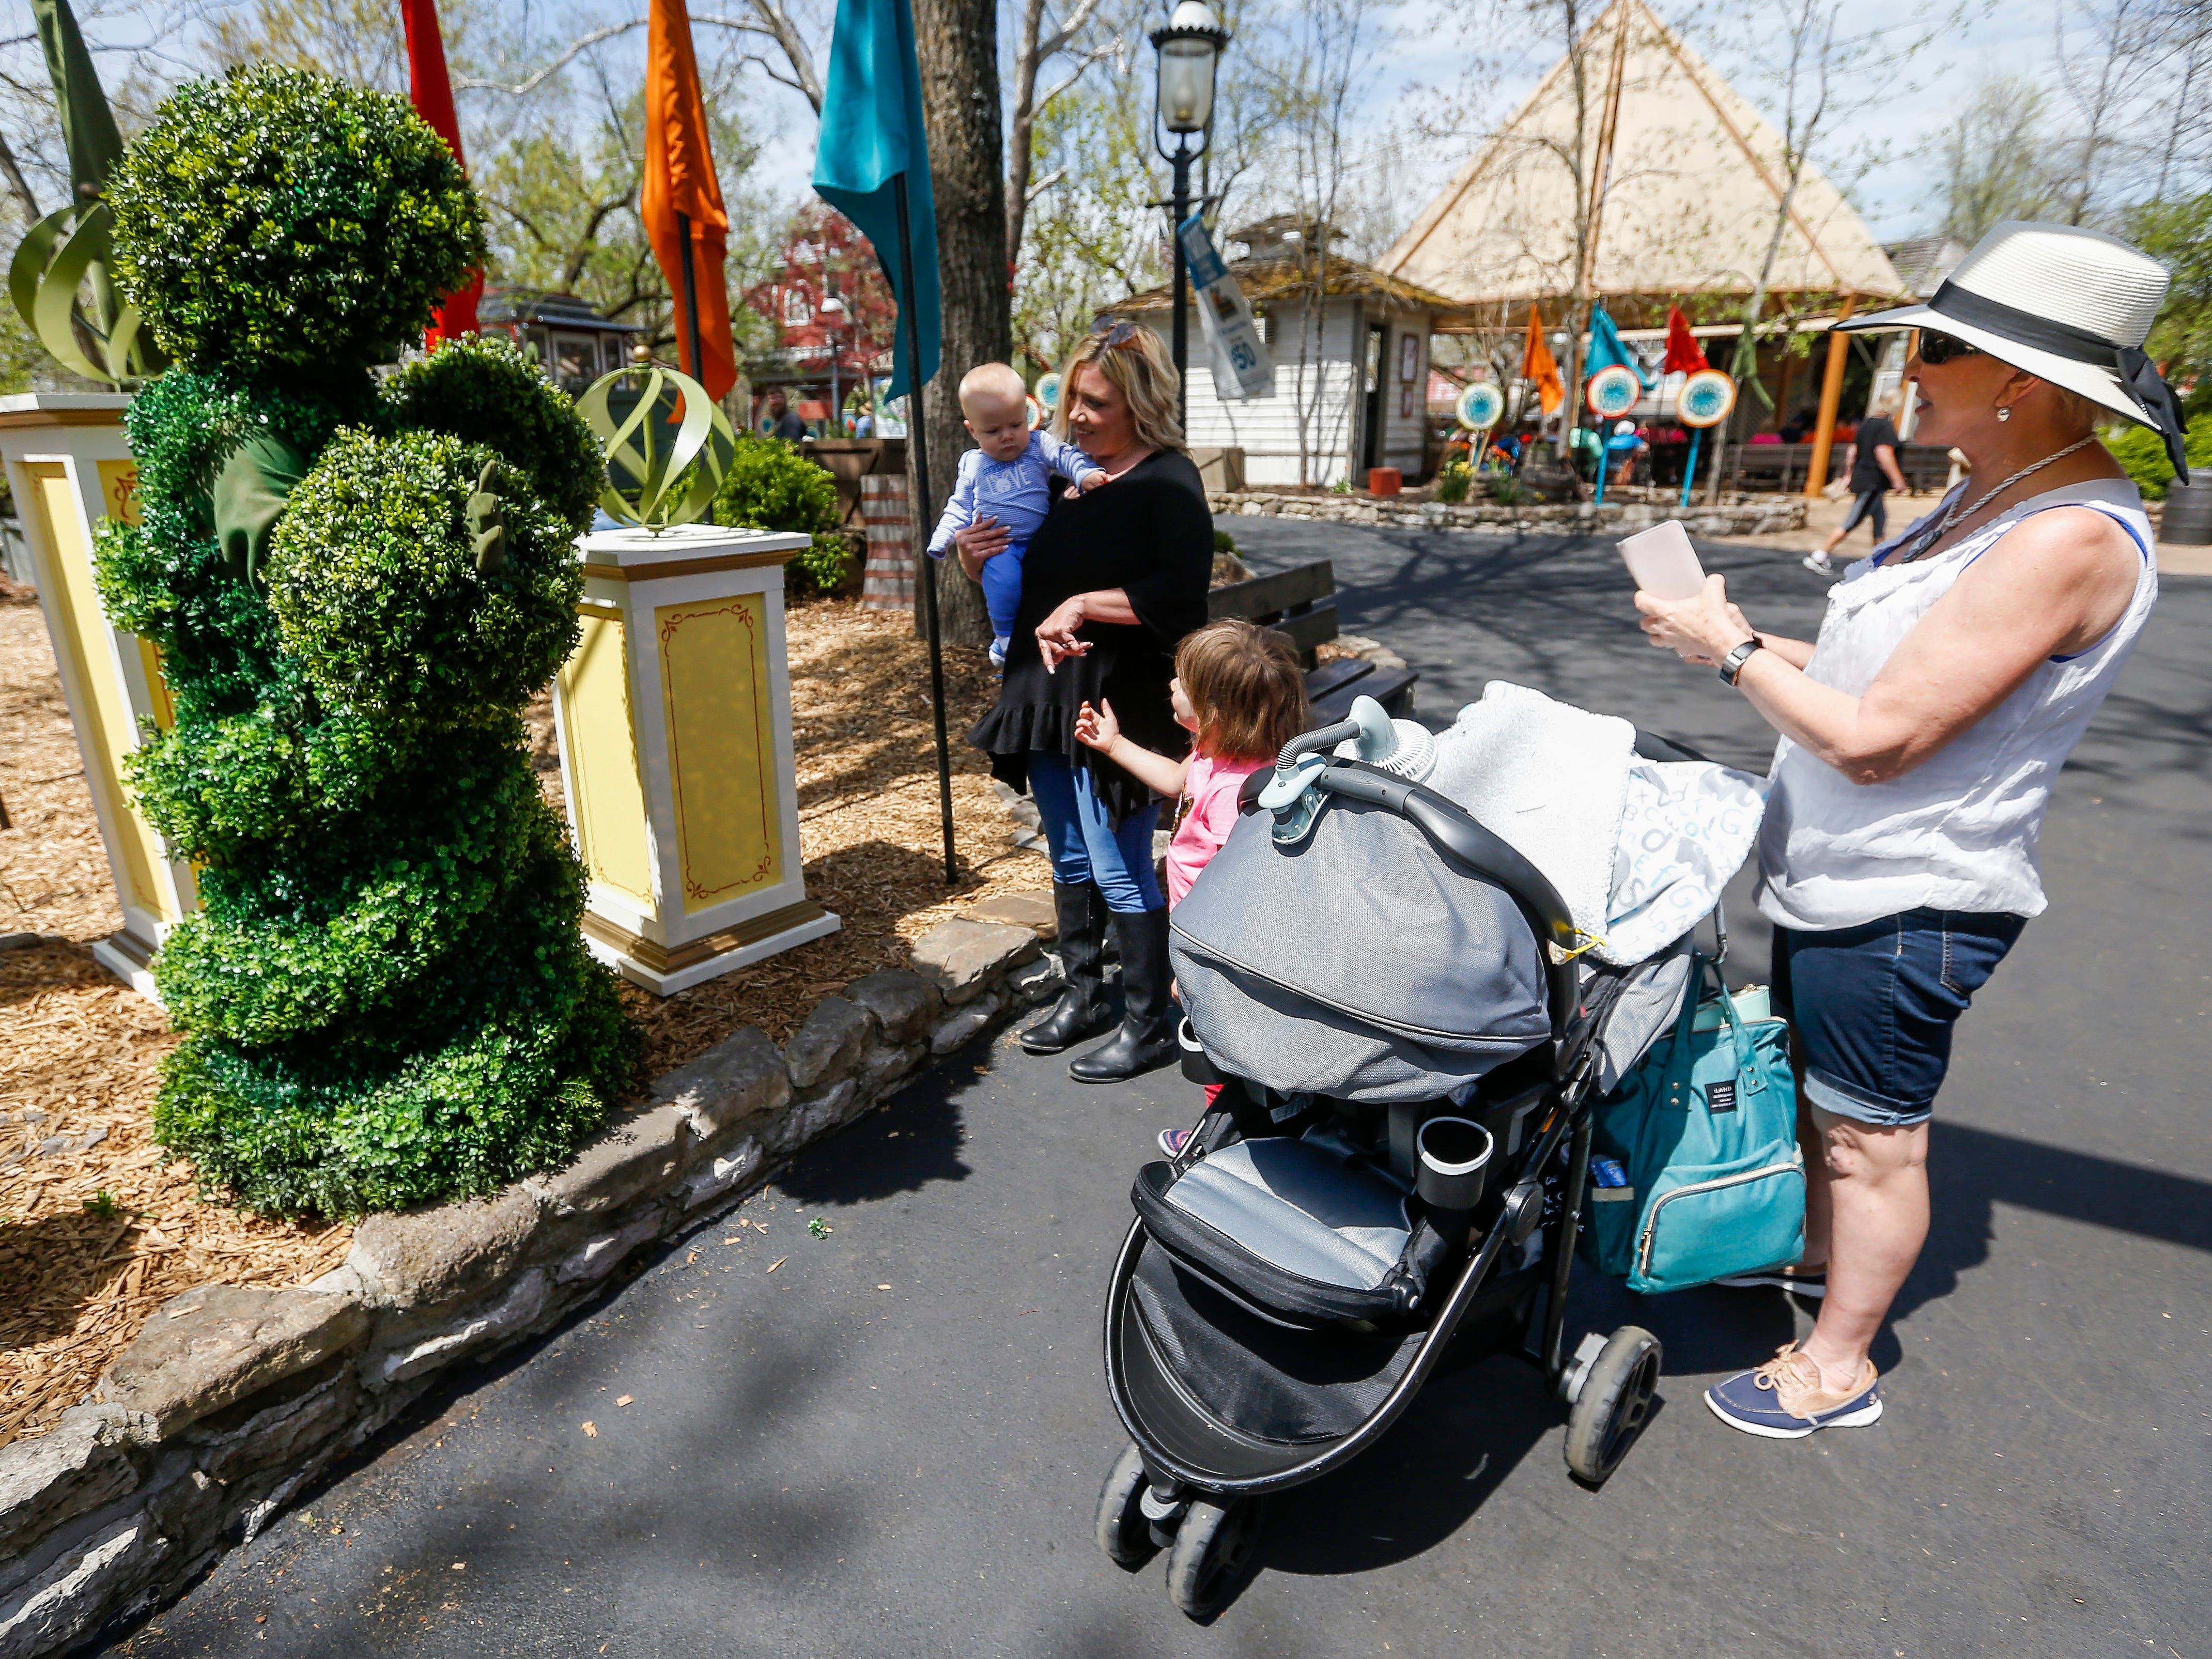 A living tree, left, talks with patrons during the Festival of Wonder on Wednesday, April 10, 2019 at Silver Dollar City. The event runs Wednesdays through Sundays, April 10-28.